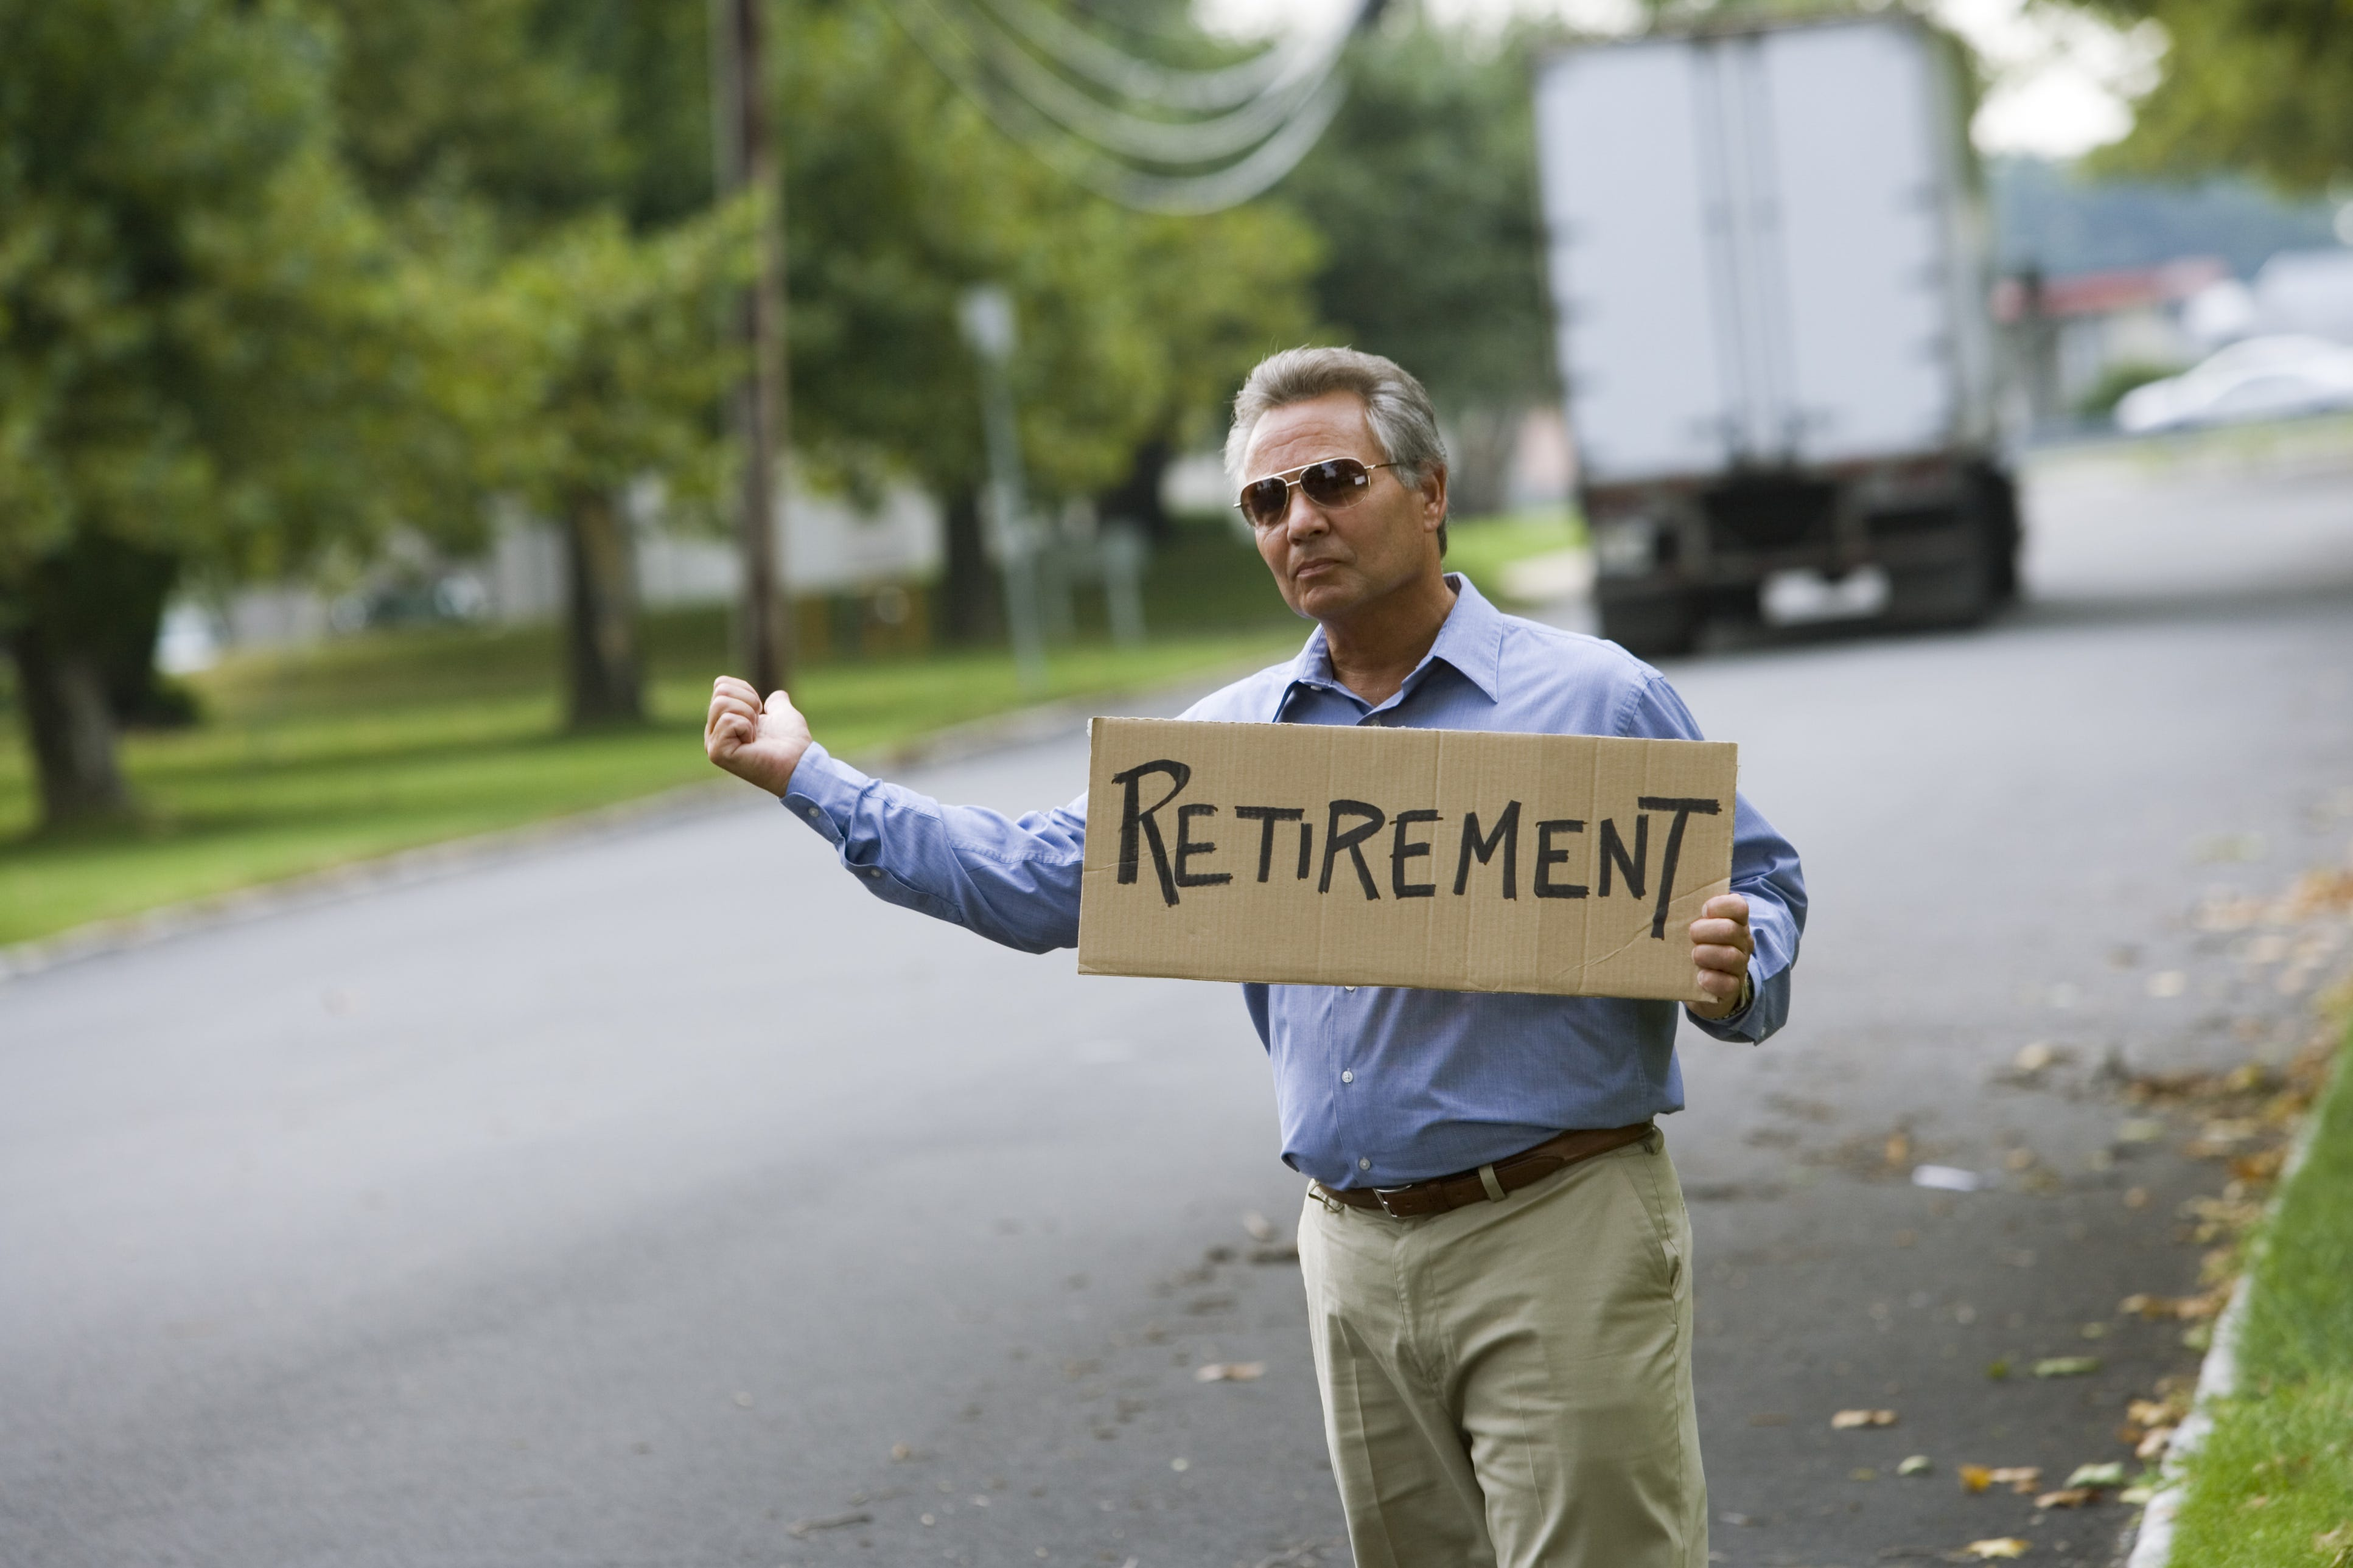 It's never too late to save for retirement